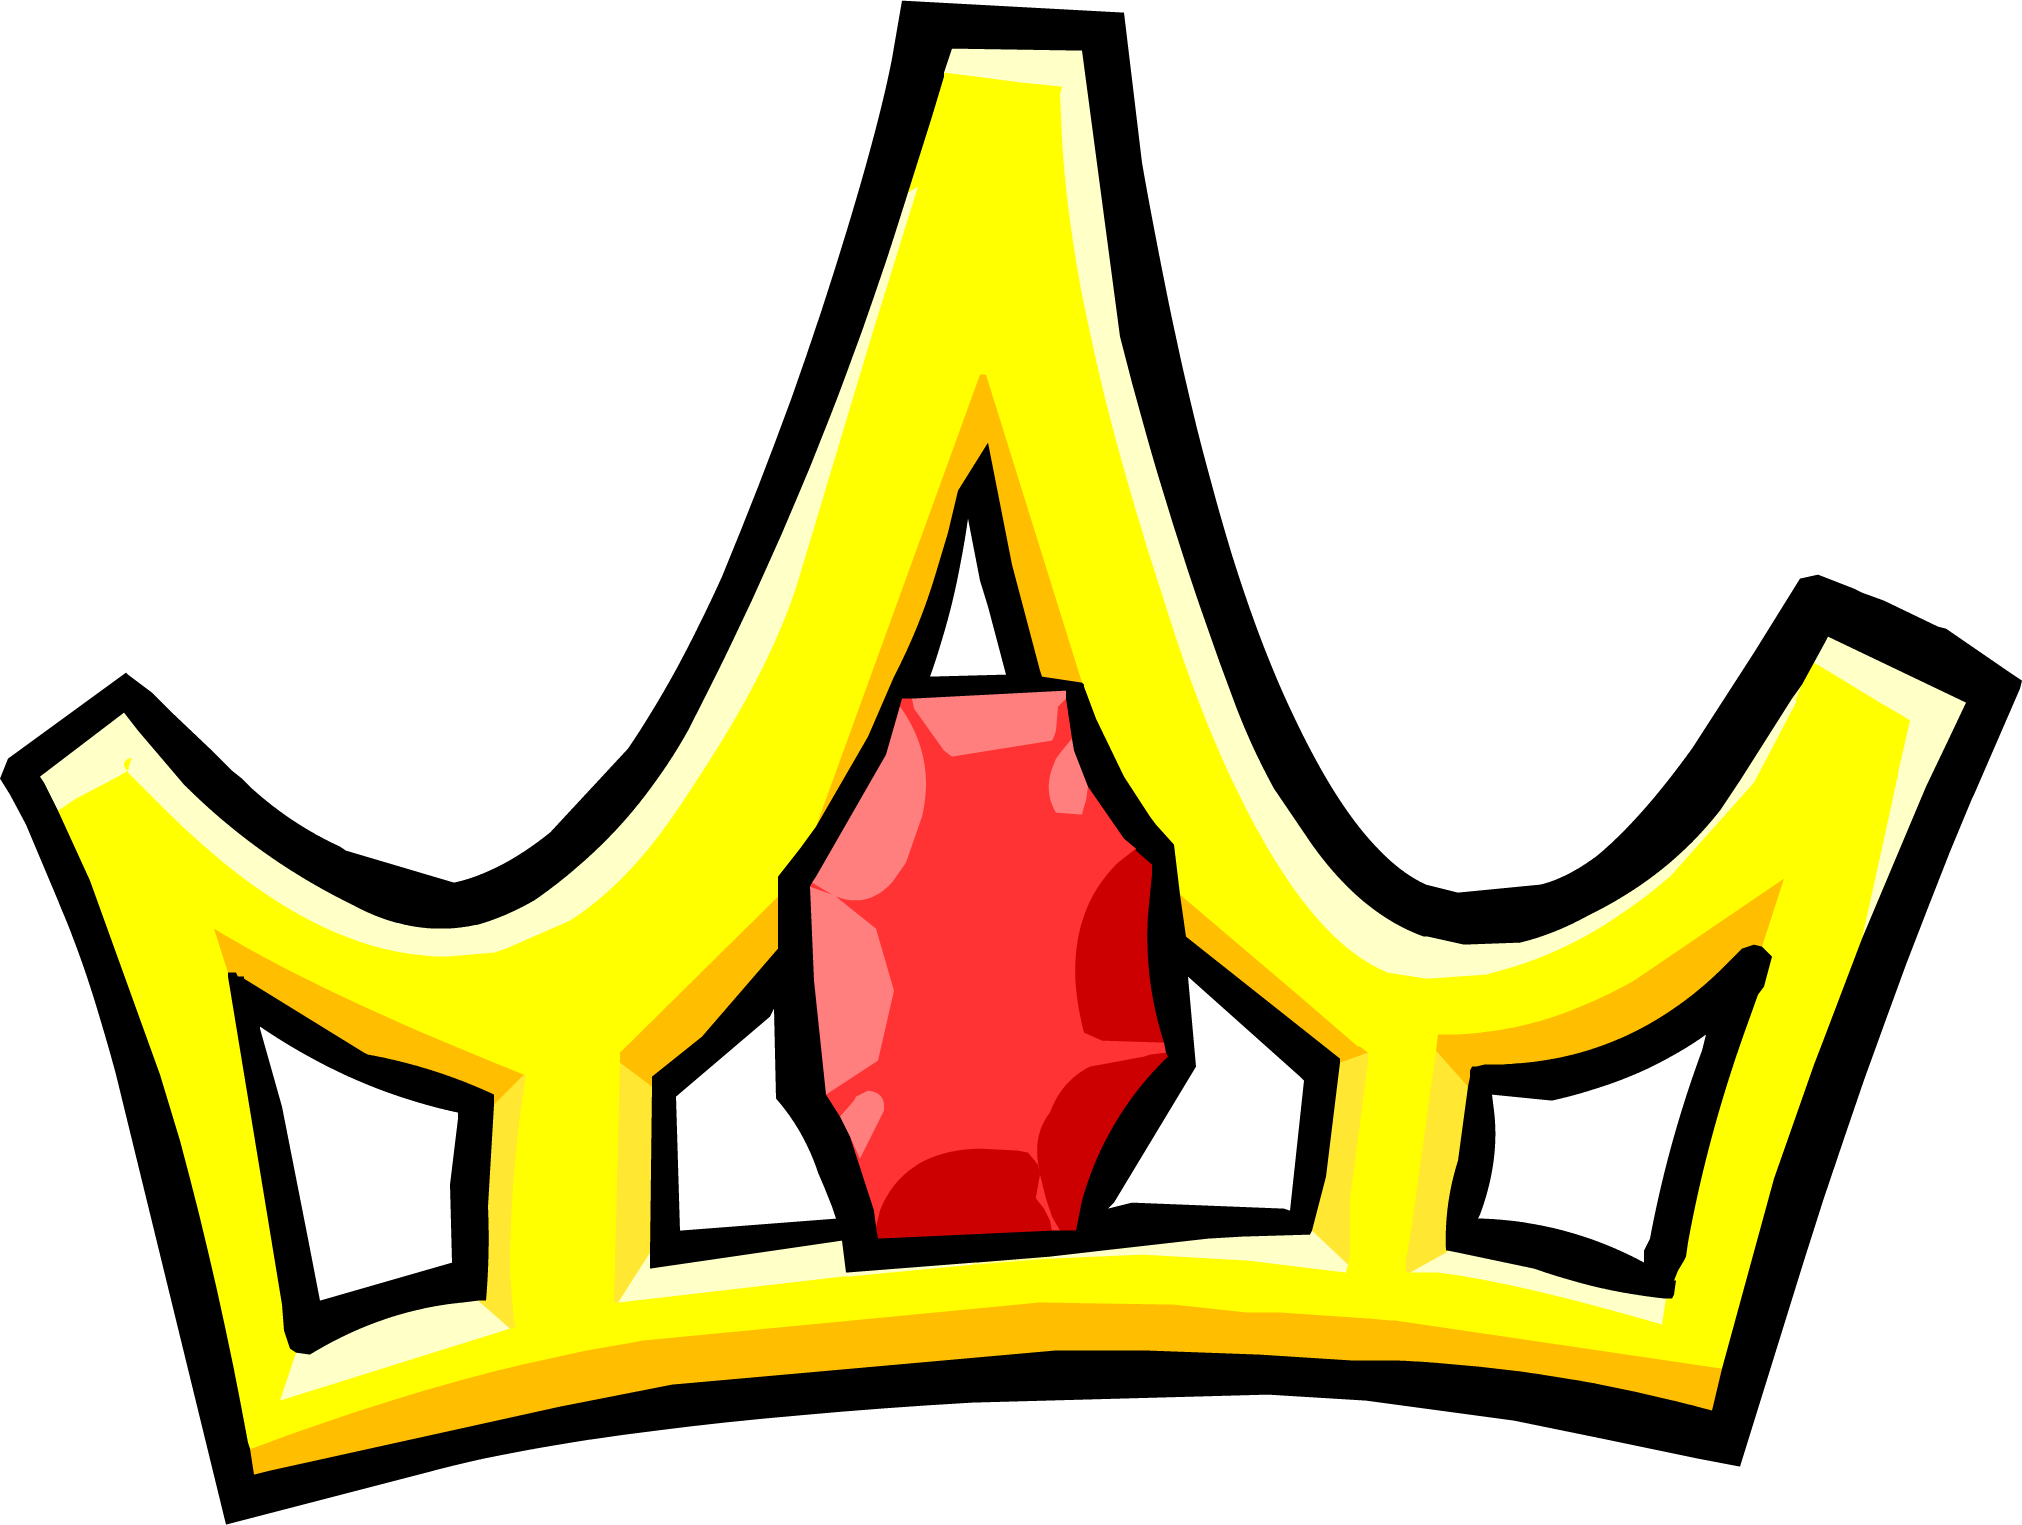 Queen Crown Png FileQueen s Crown icon png